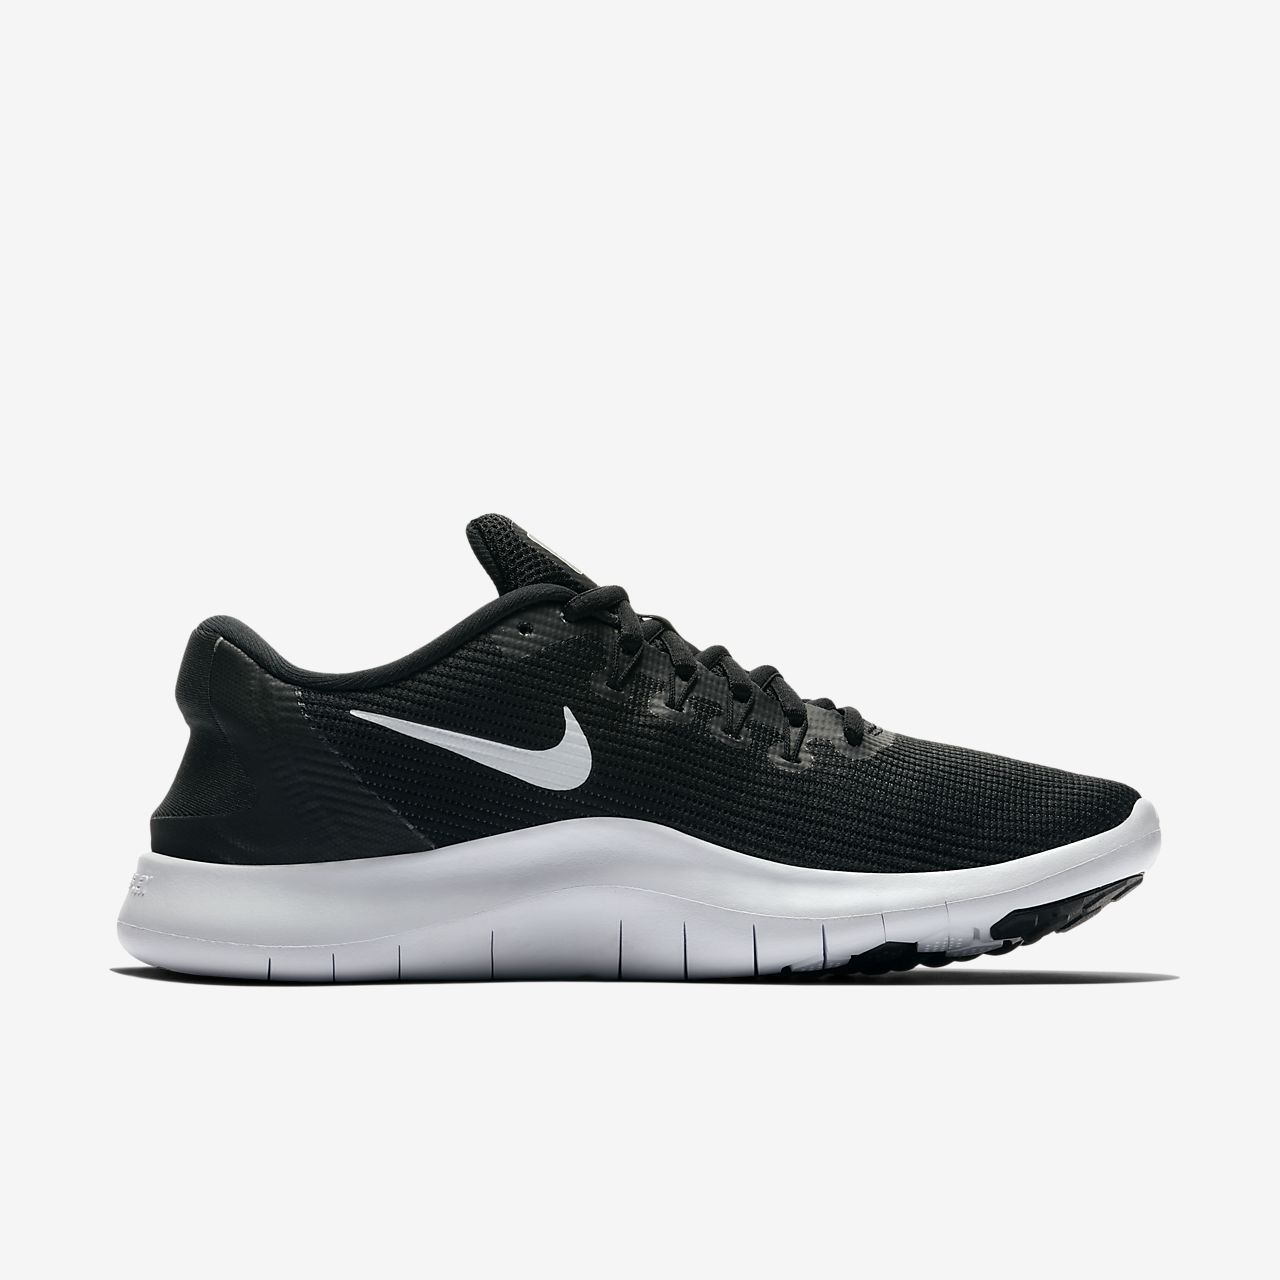 Nike Womens Flex Rn 2018 Fabric Low Top Lace Up Running Sneaker